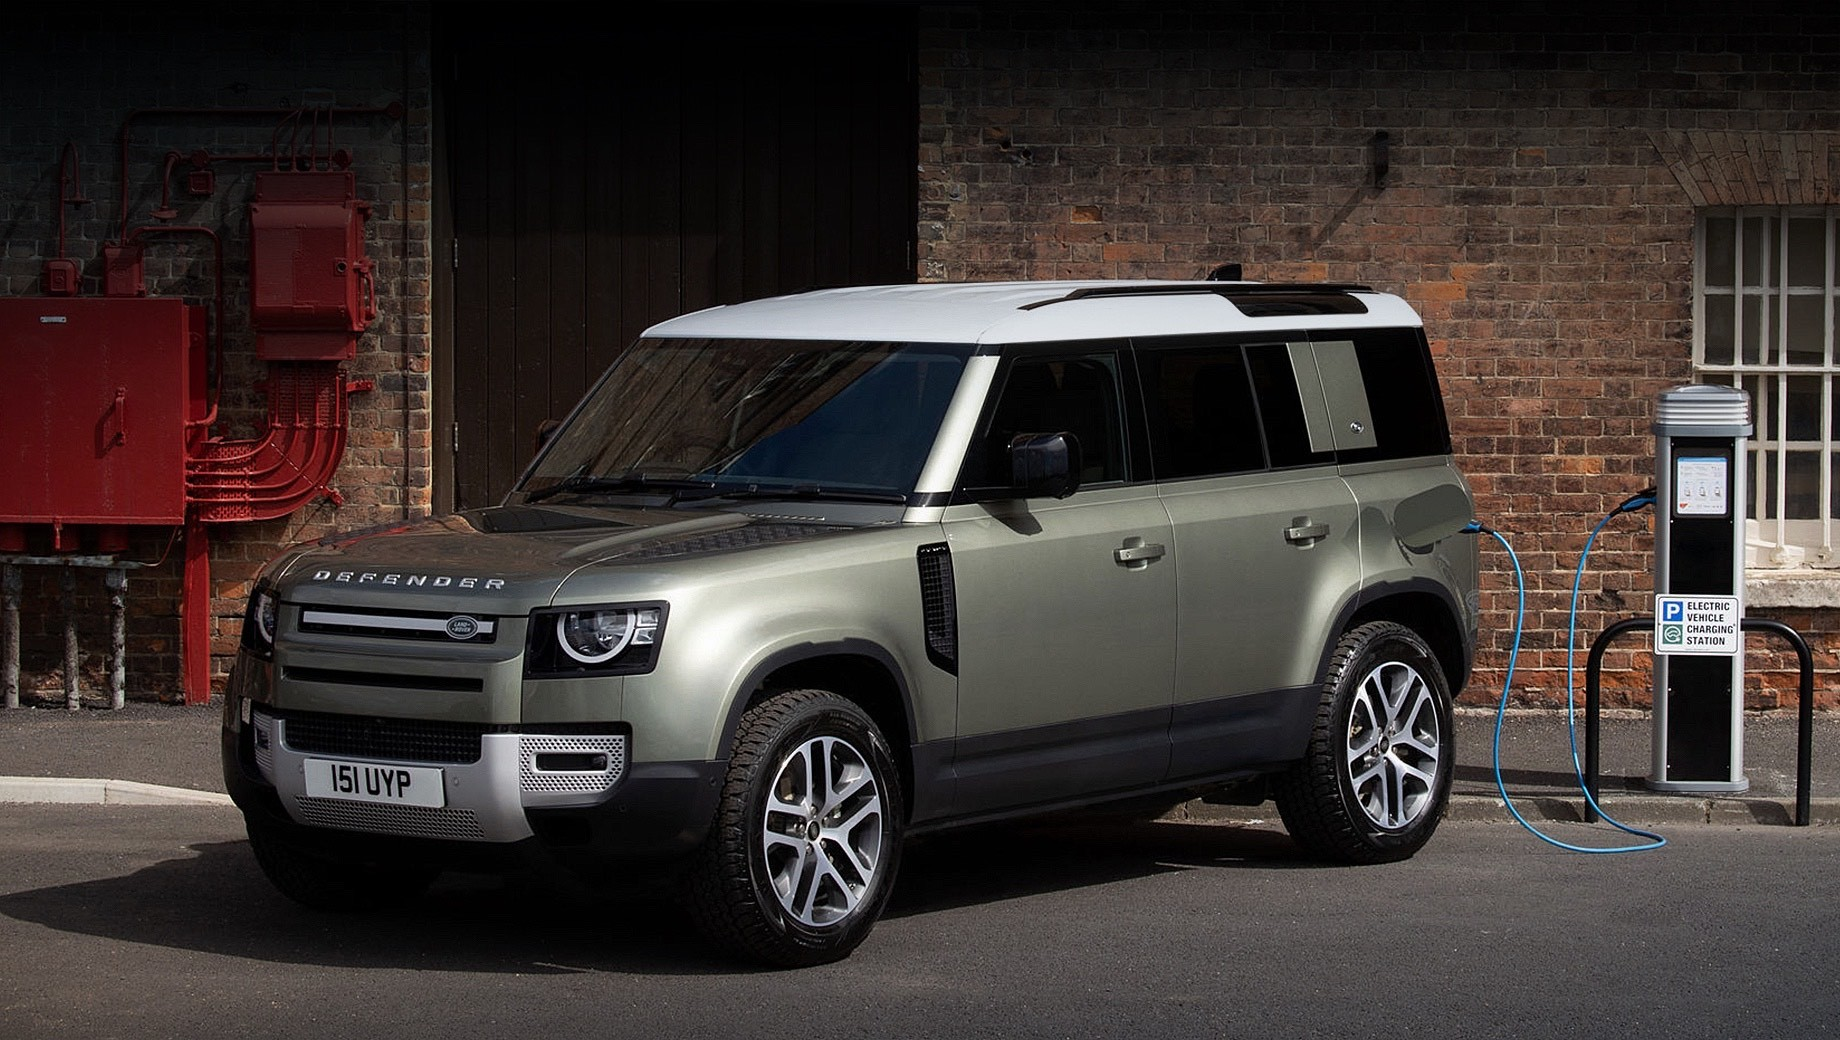 Land Rover Defender обзавёлся новым дизелем и электромотором